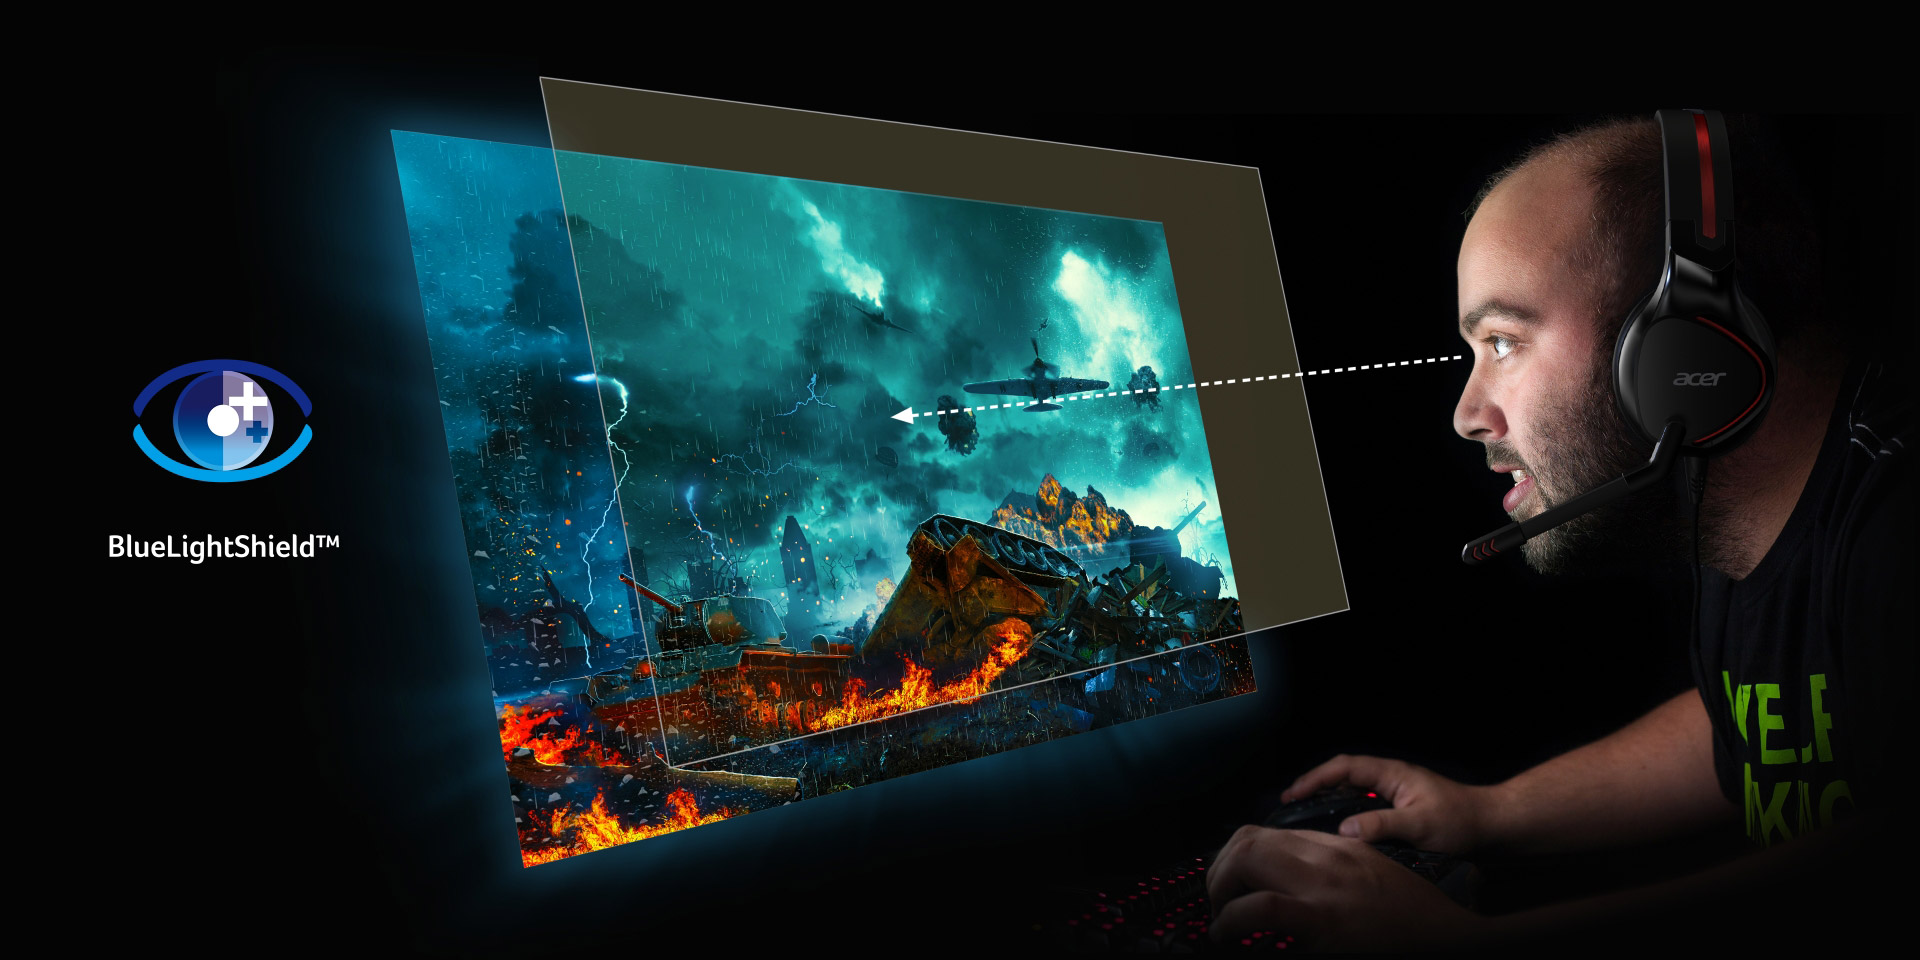 Acer Claims 'Overdrive Mode' For Its Nitro XF2 Monitor Can Hit 0.2ms Response Time